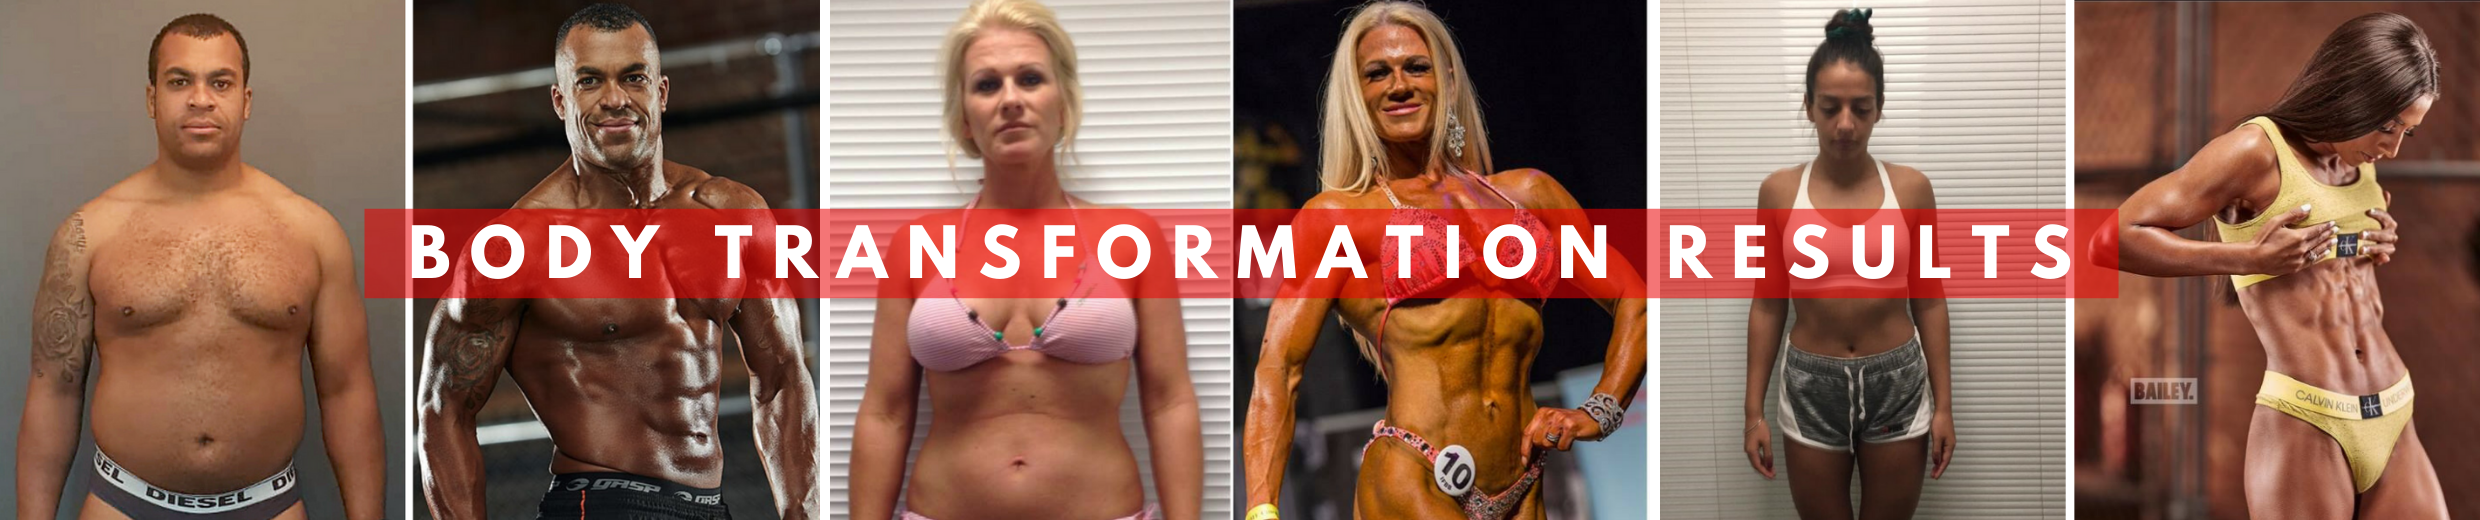 m10 body transformation results